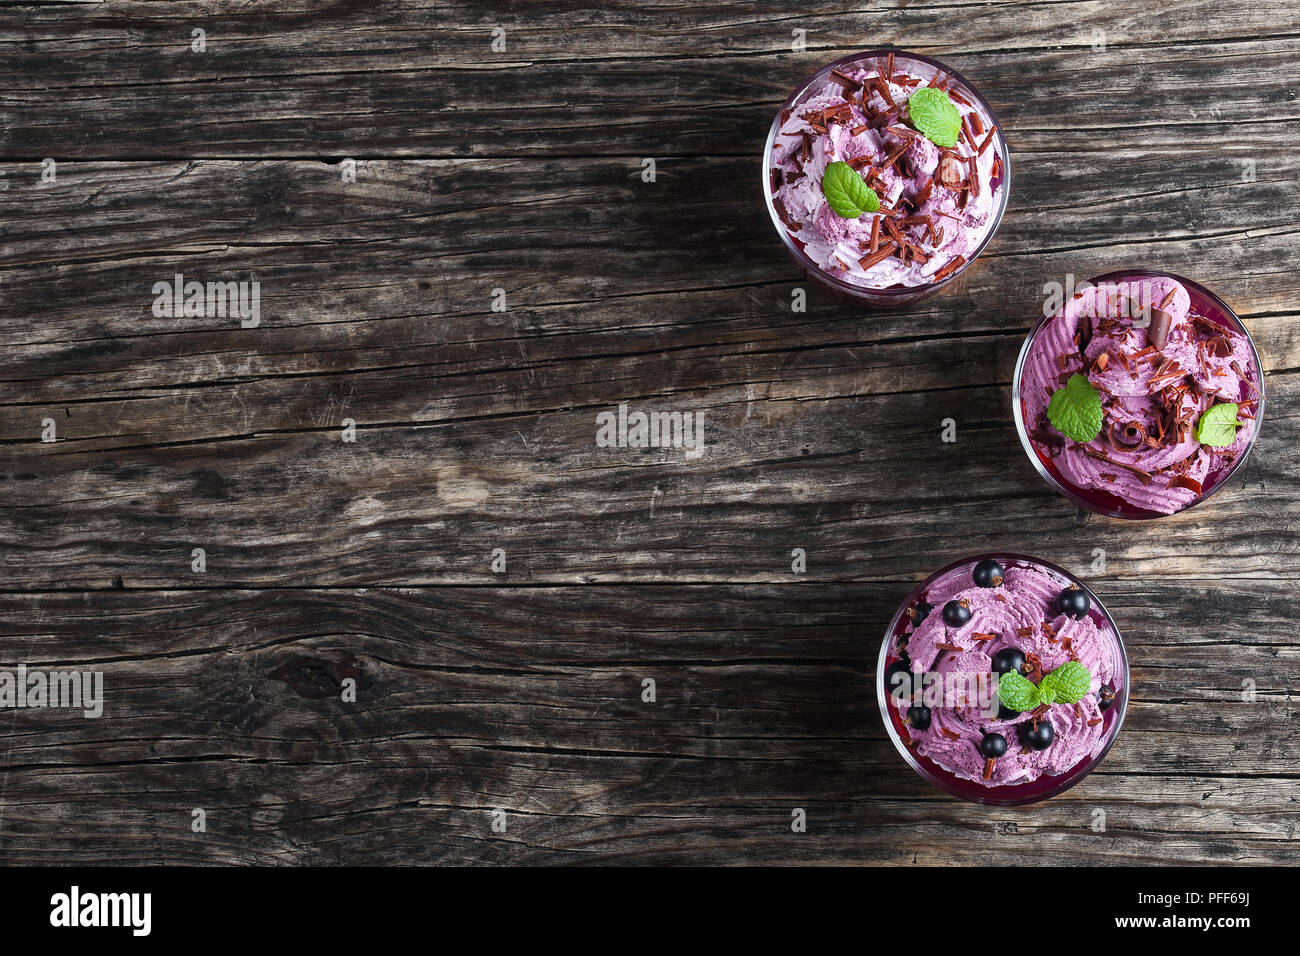 summer dessert of blackcurrant and Frozen ricotta Yogurt mousse sprinkled with finely chopped chocolate chips decorated with mint leaves in glass cups - Stock Image